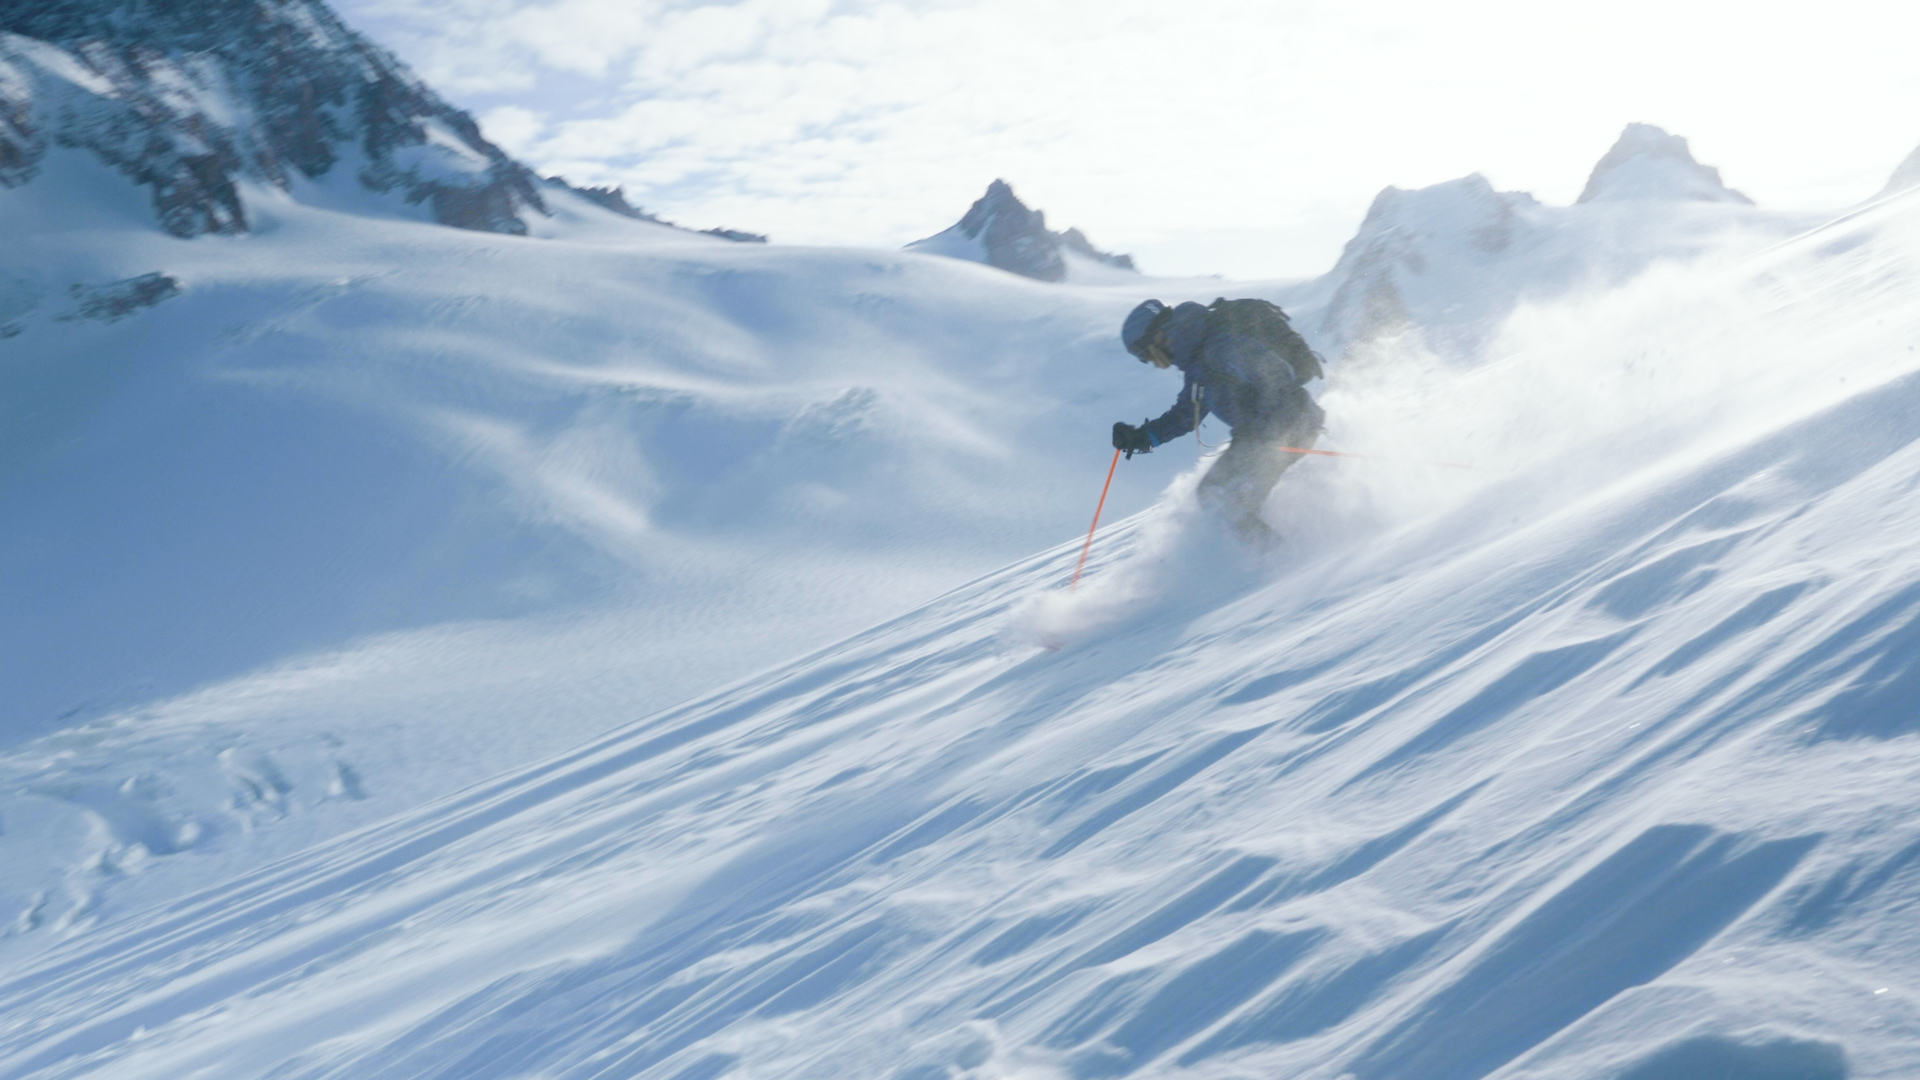 A skier enjoys fresh powder in Chamonix's Vallee Blanche